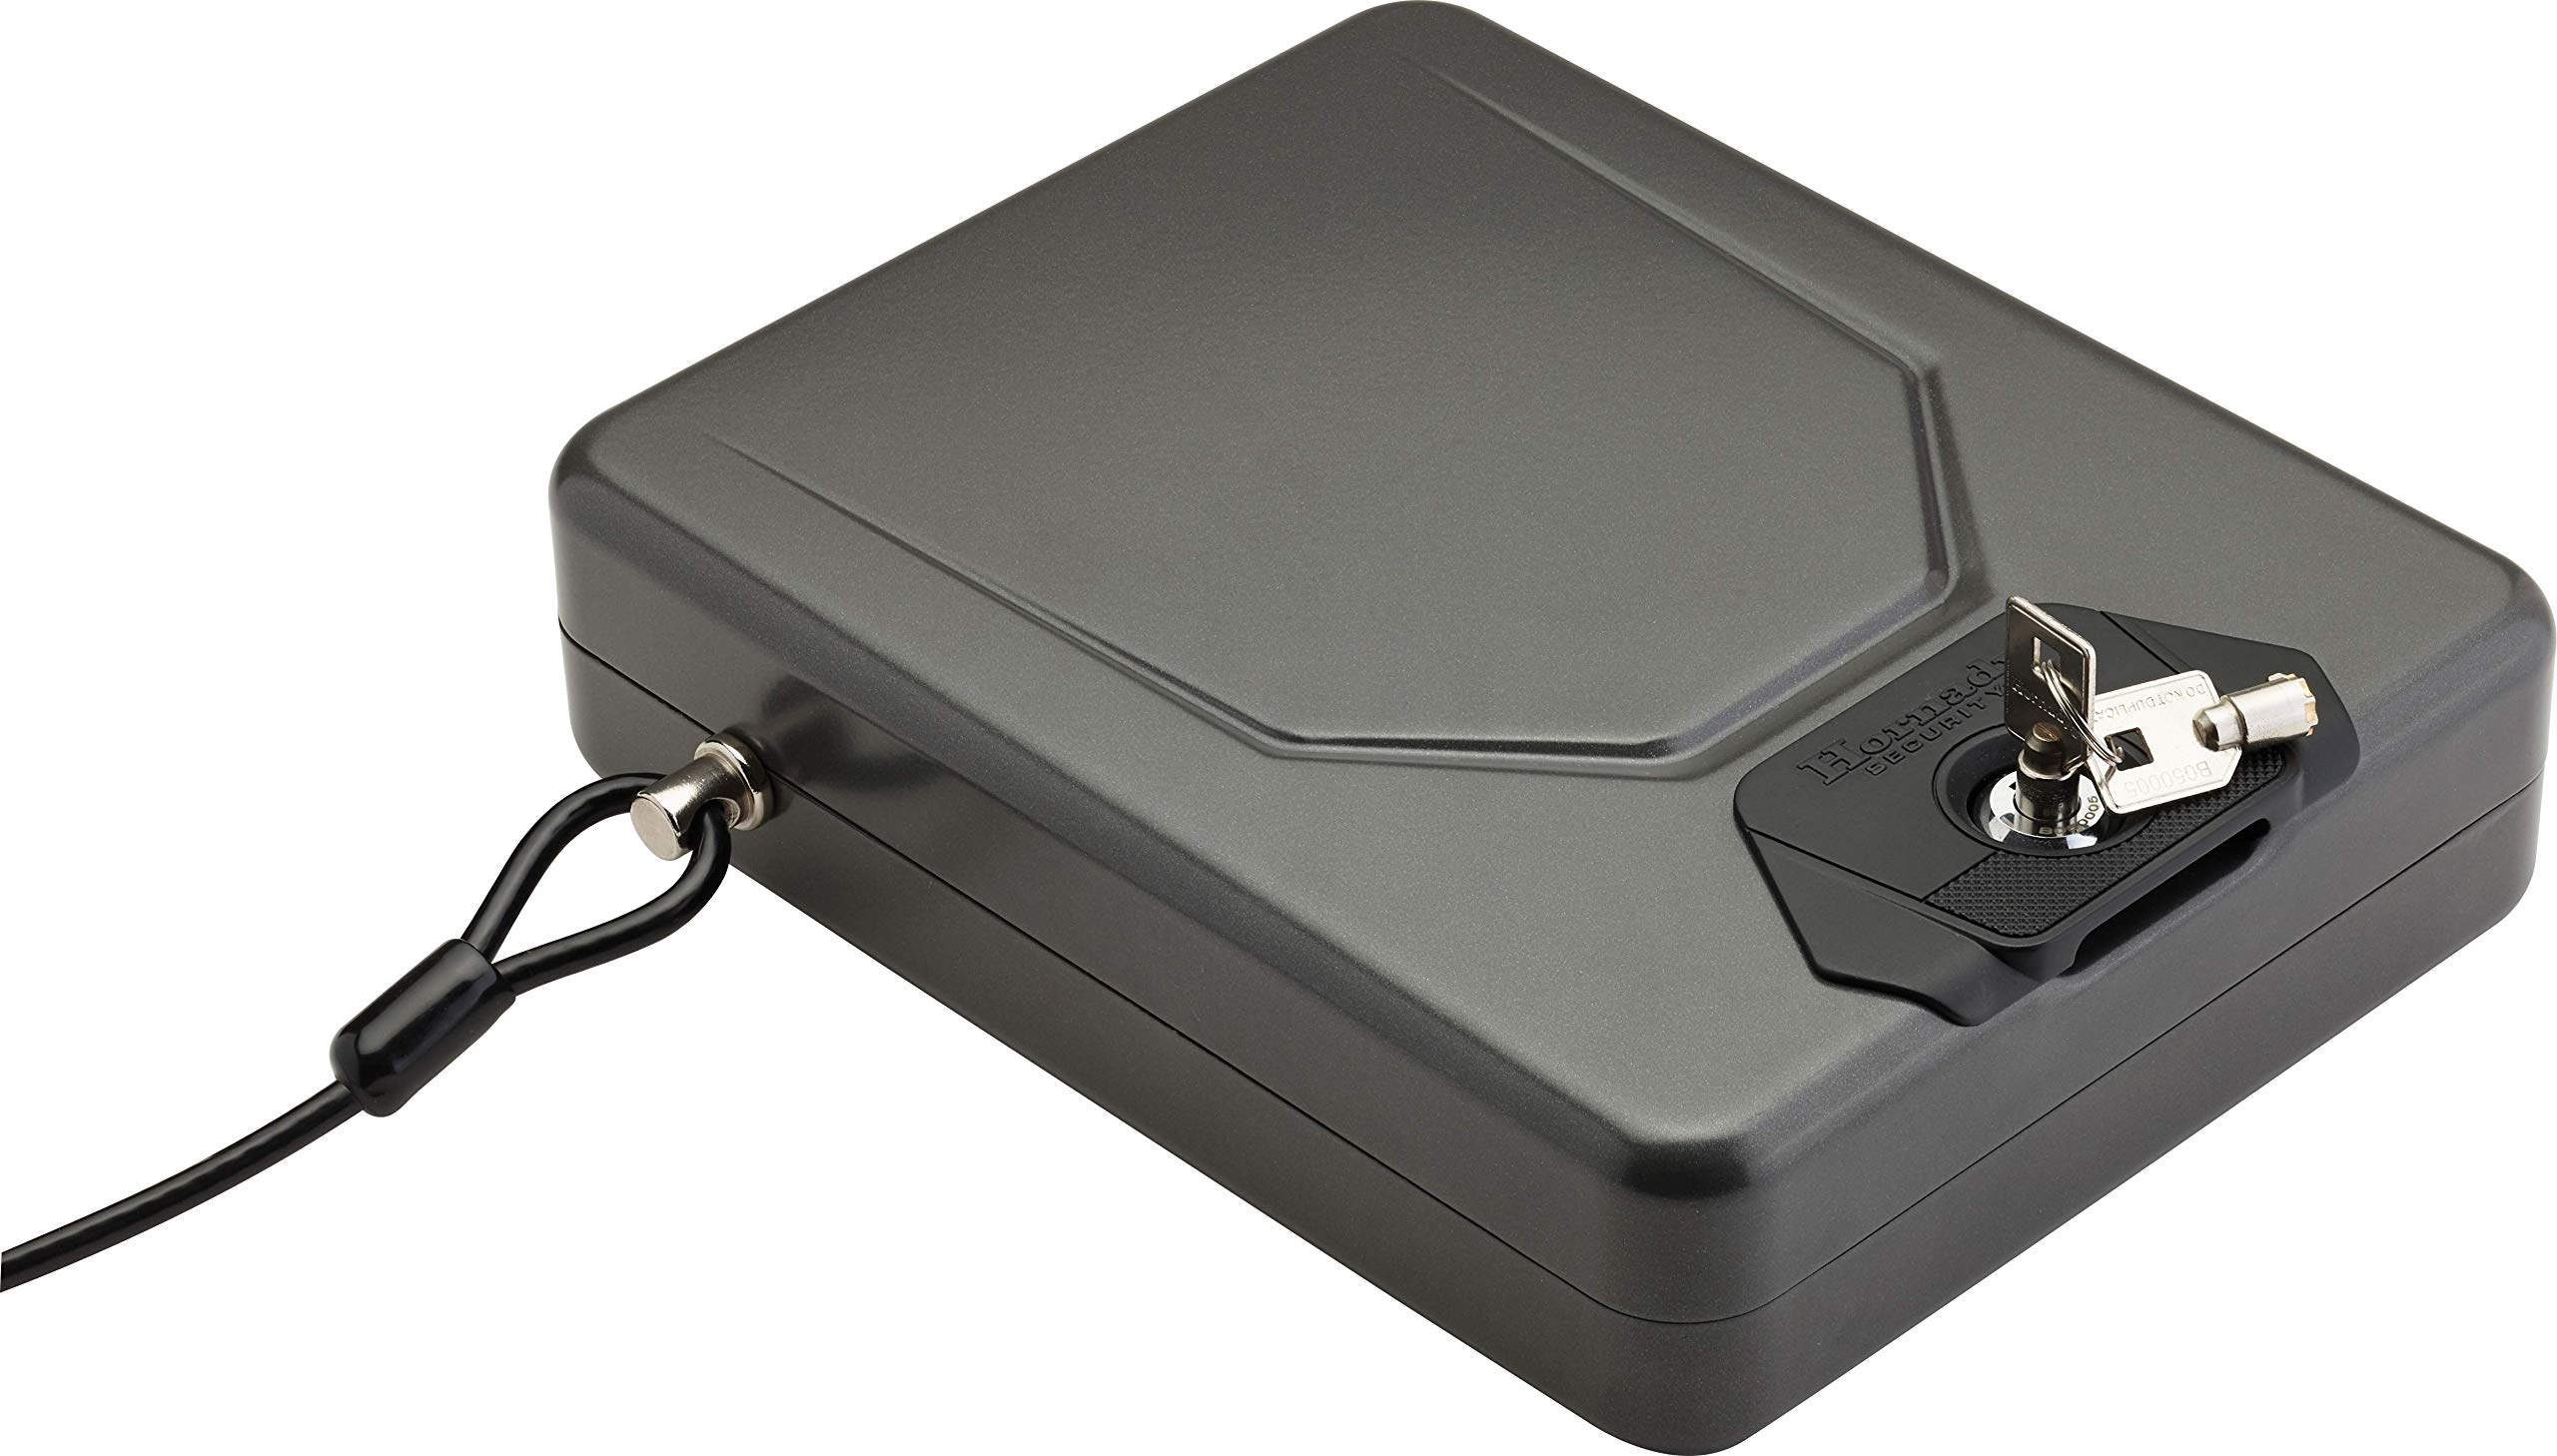 Hornady 98153 Alpha Elite Lock Box by Hornady